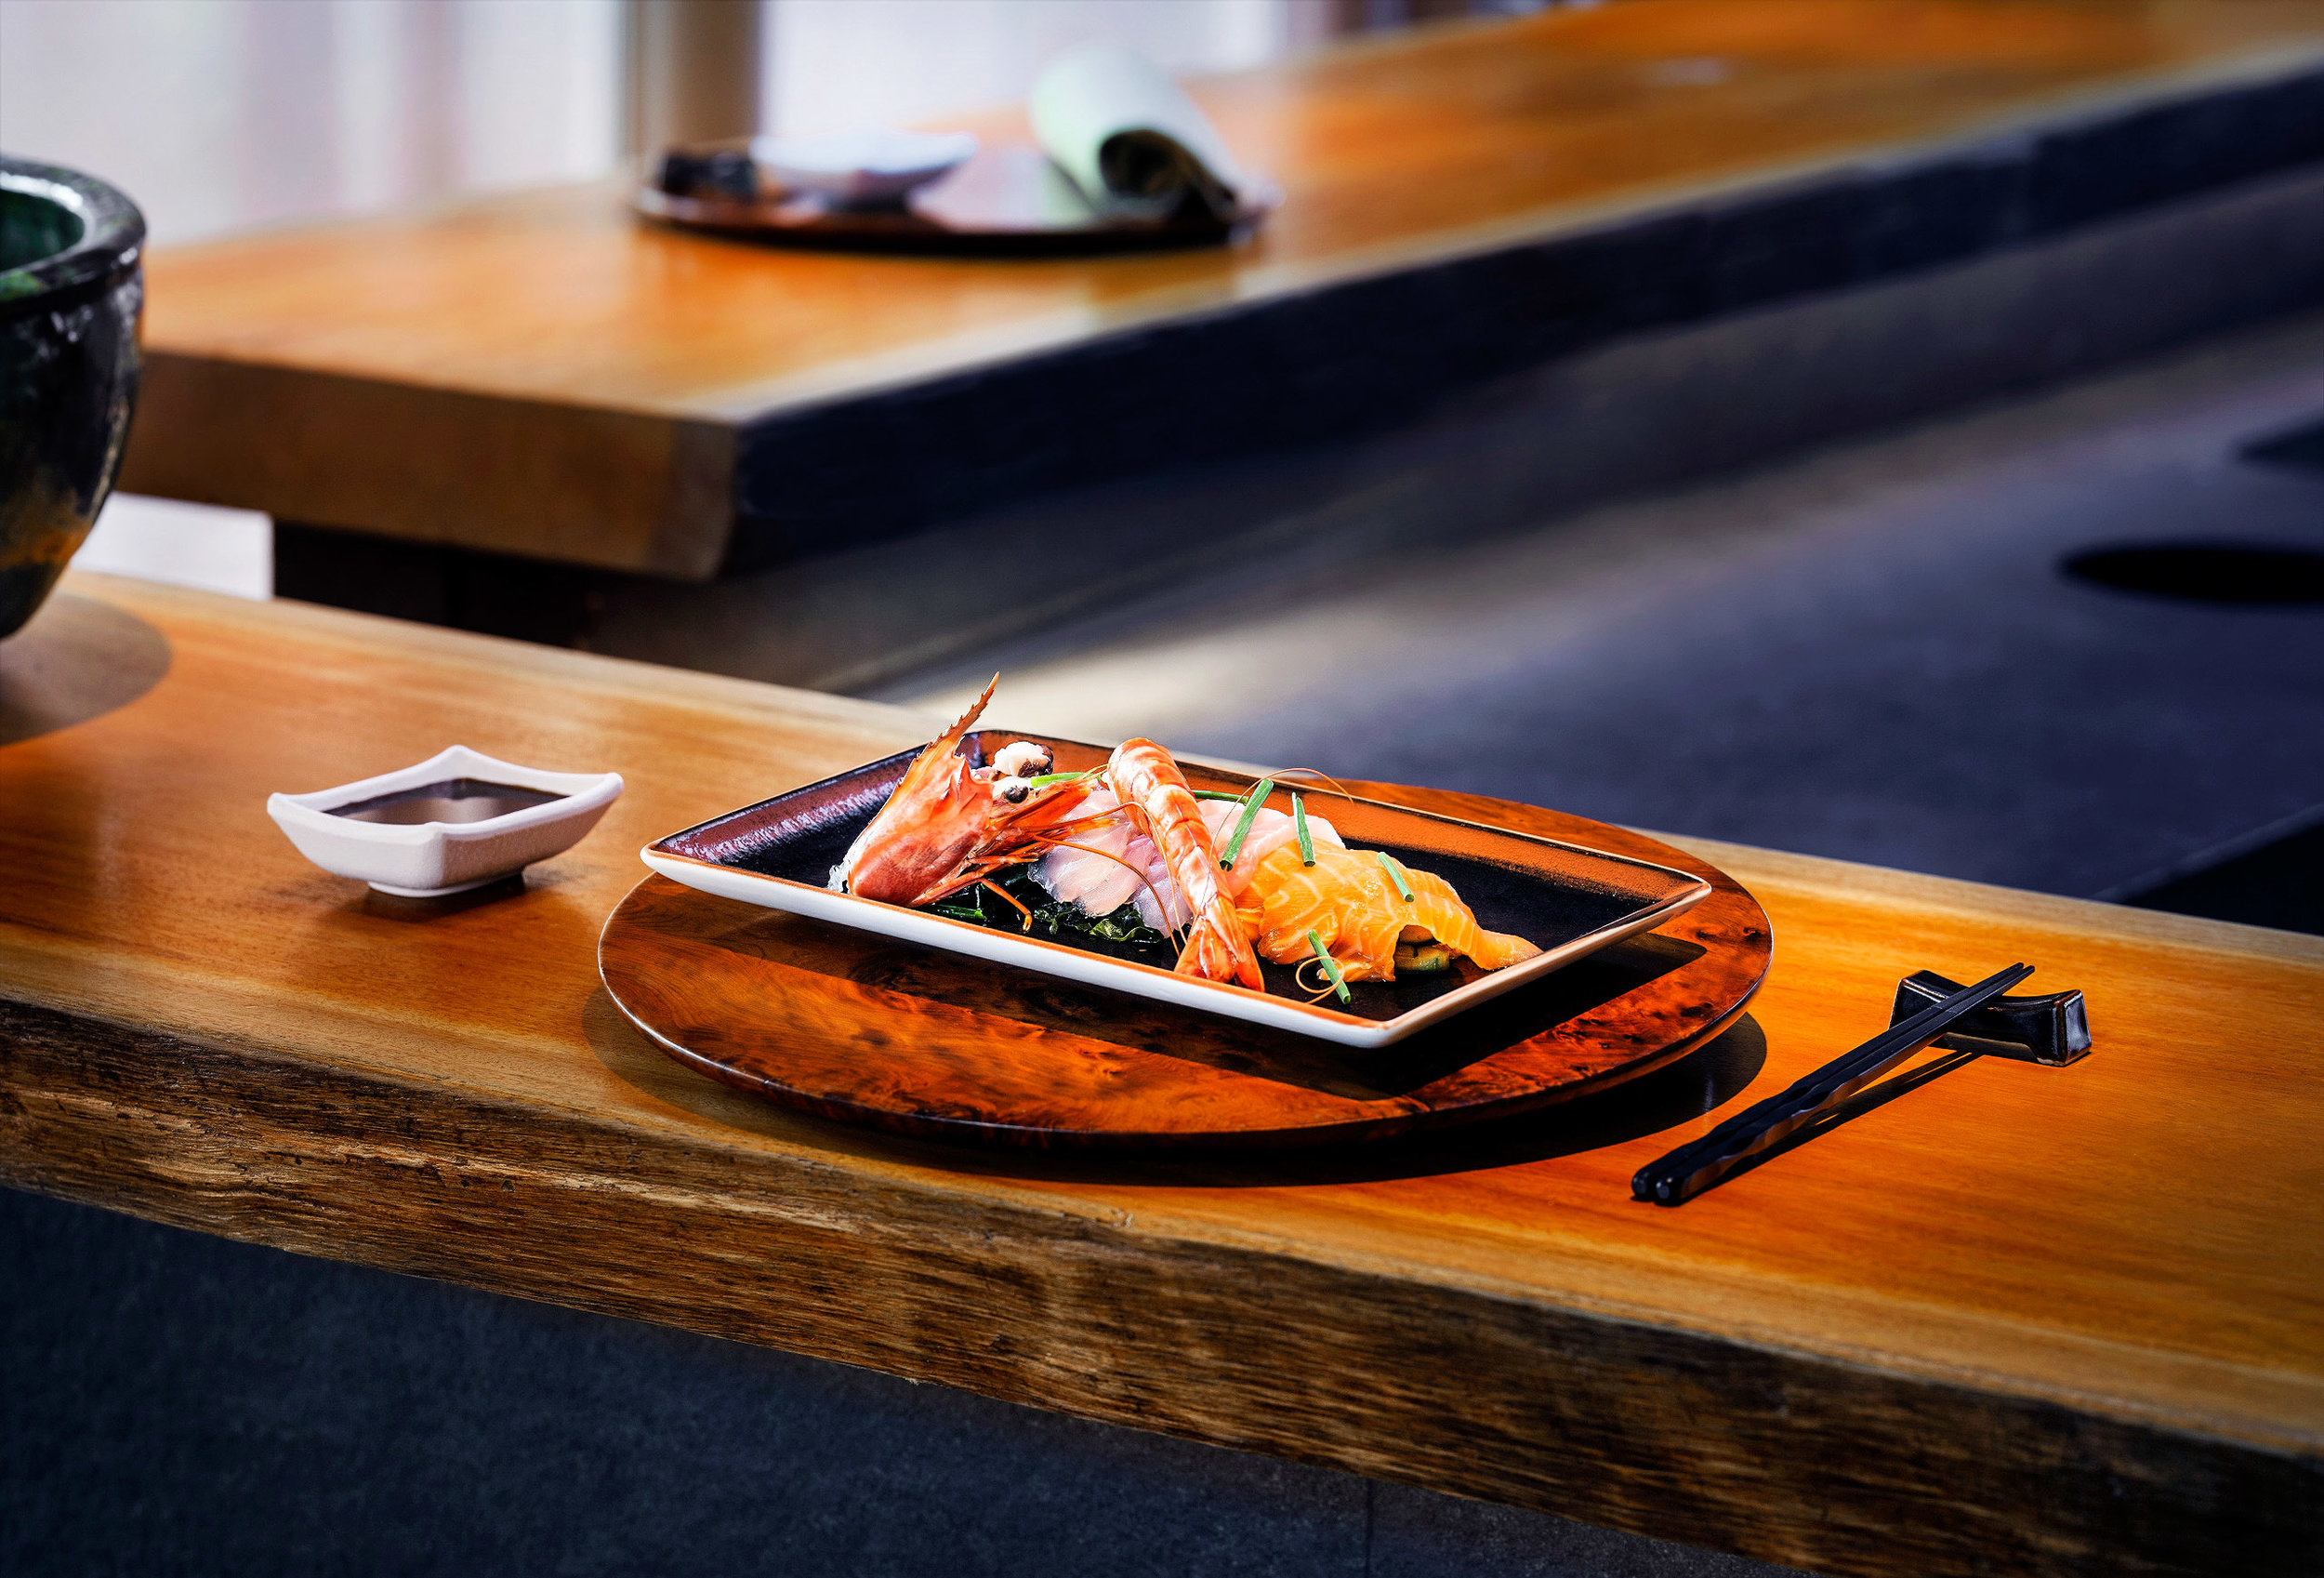 As well as traditional North African food, there is also an authentic Japanese restaurant in Amanjena.